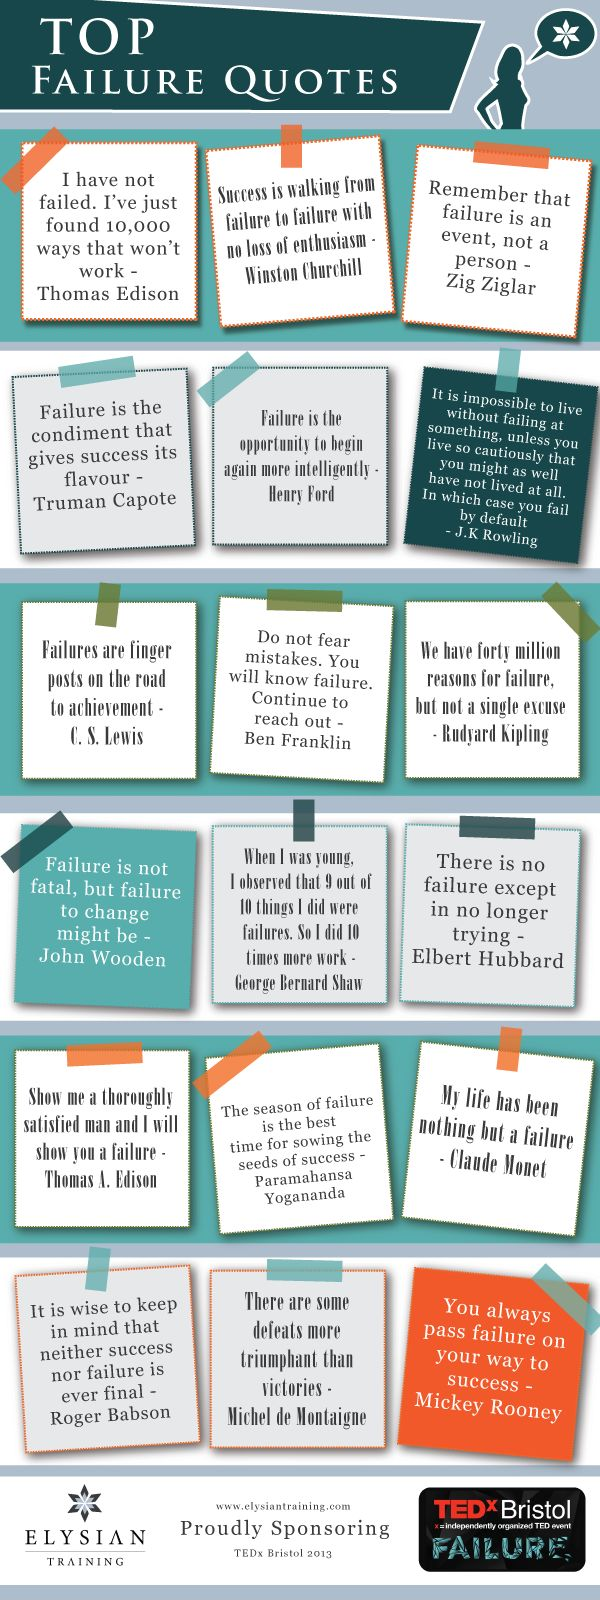 Everyone fails, and some of the most successful people have made the biggest failures. They just never stopped trying, even when they wanted to.